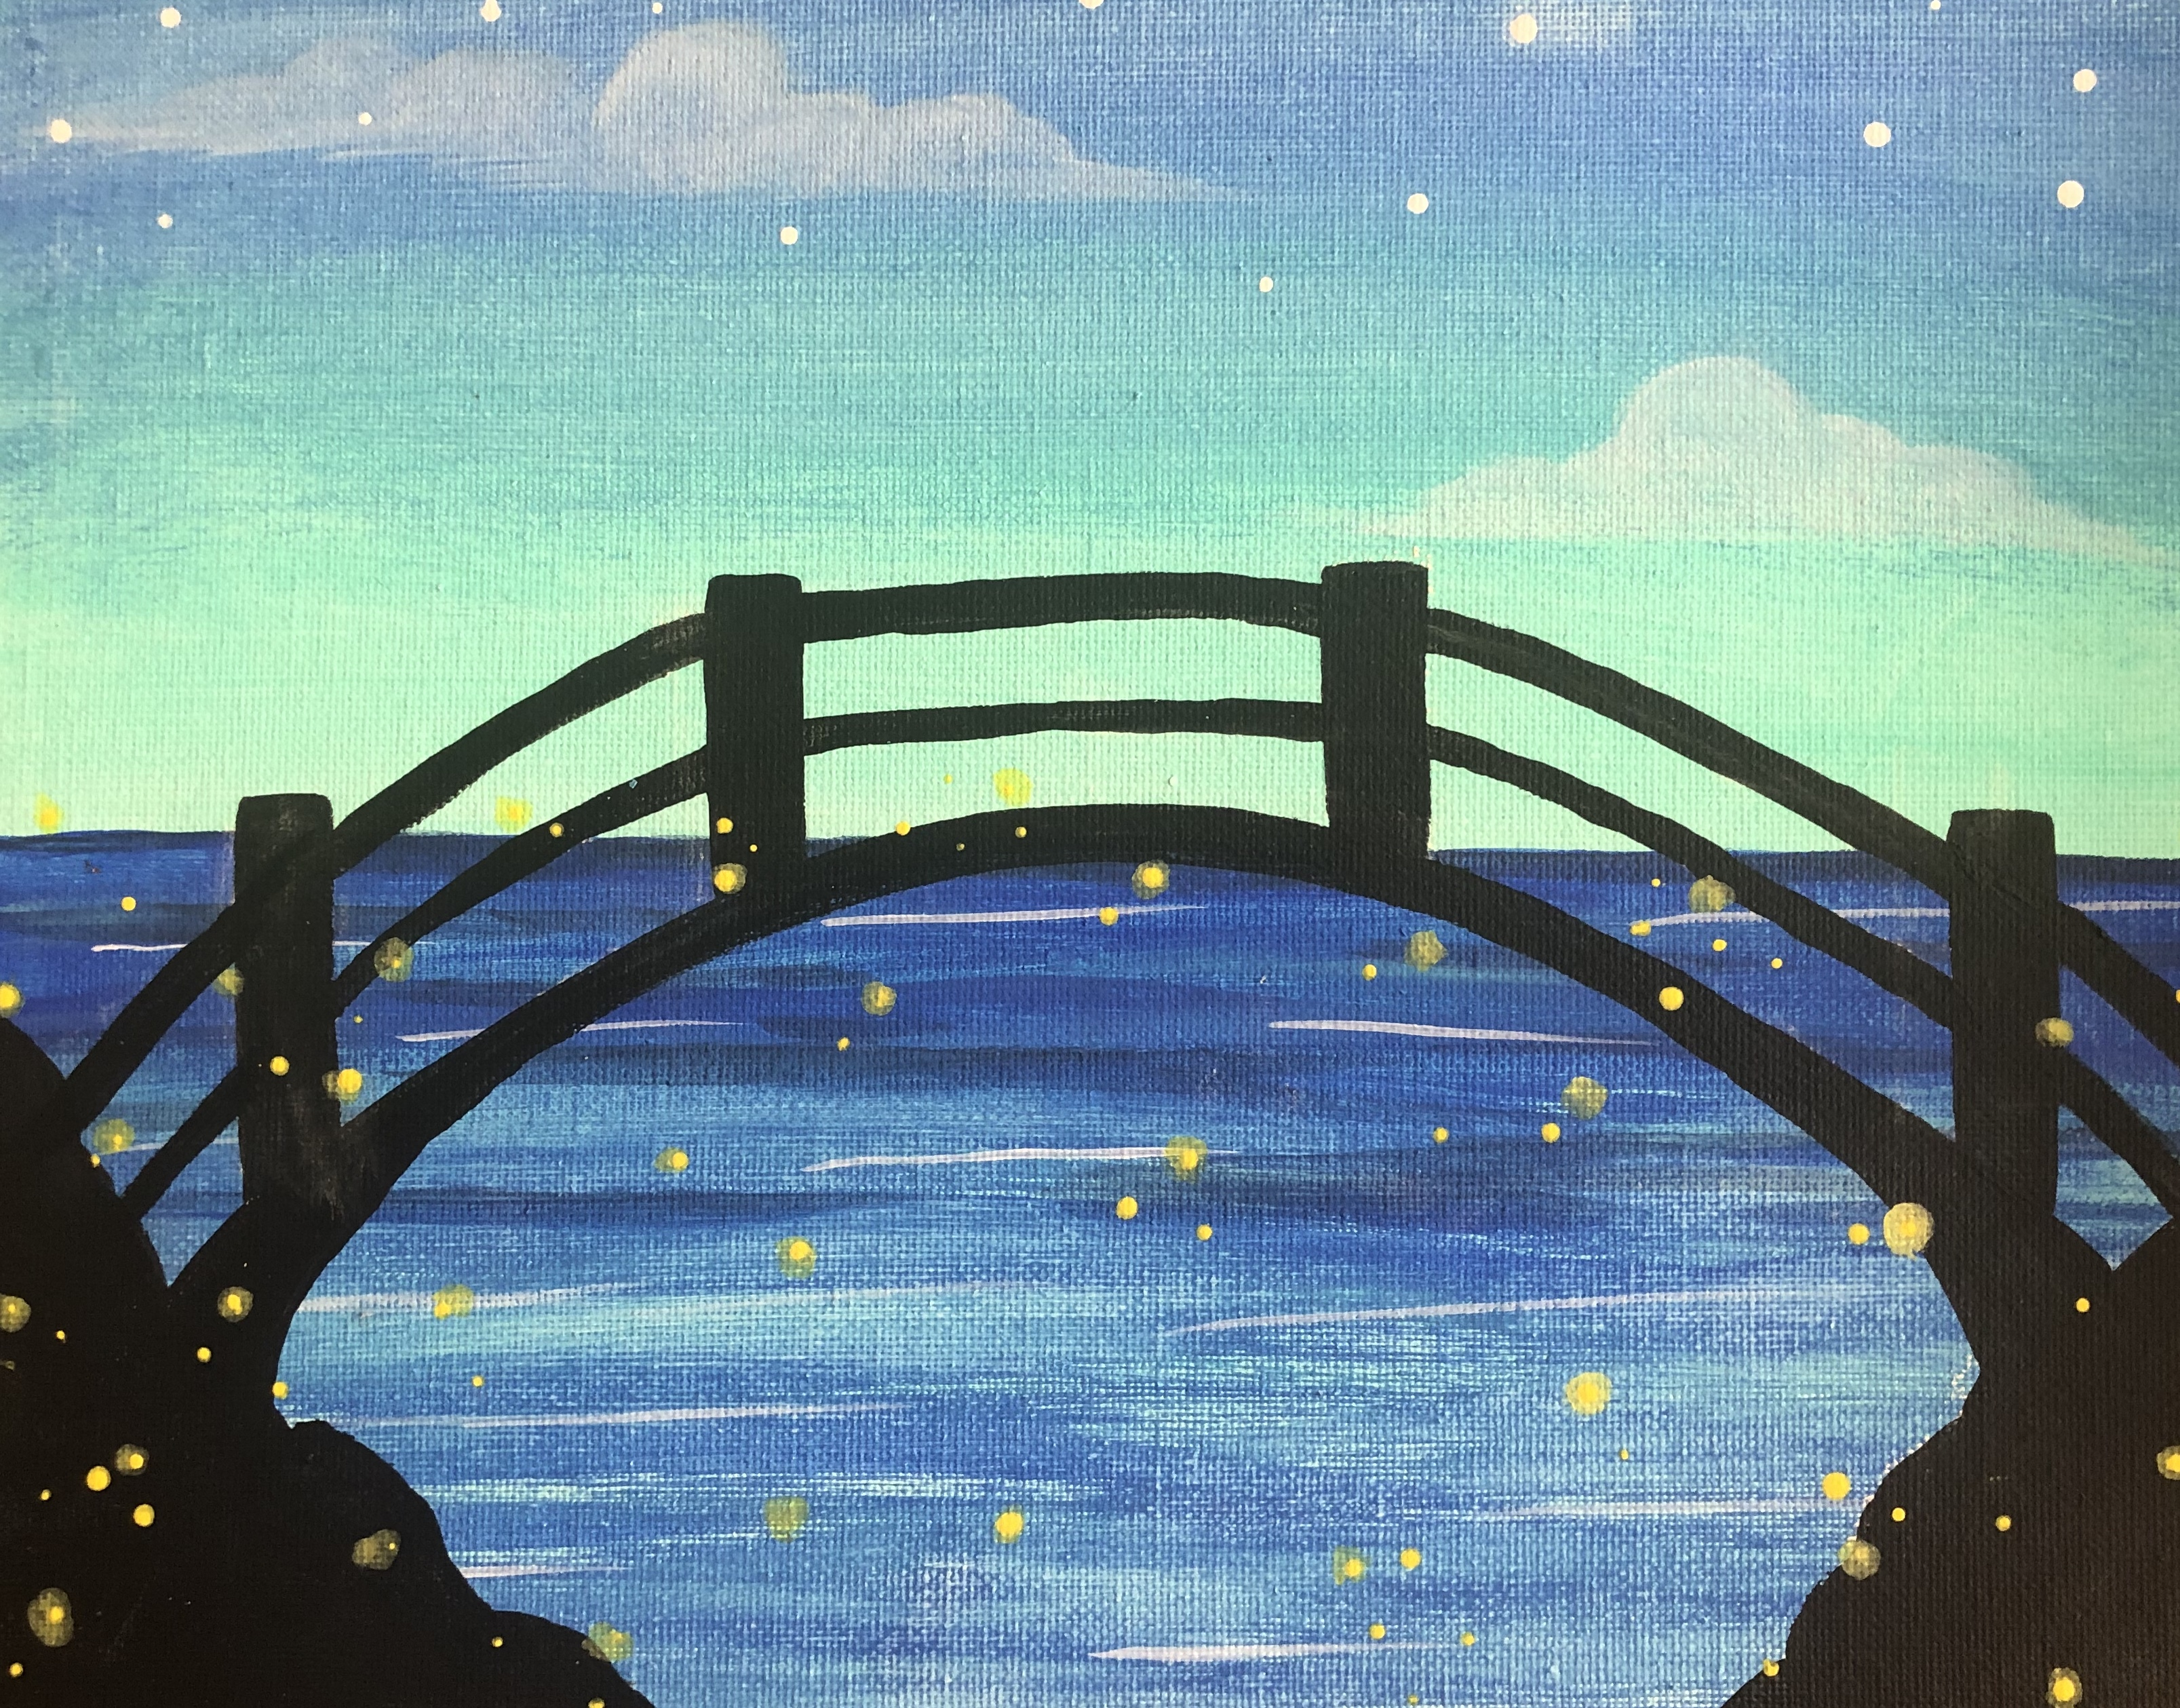 Fireflies by the Bridge